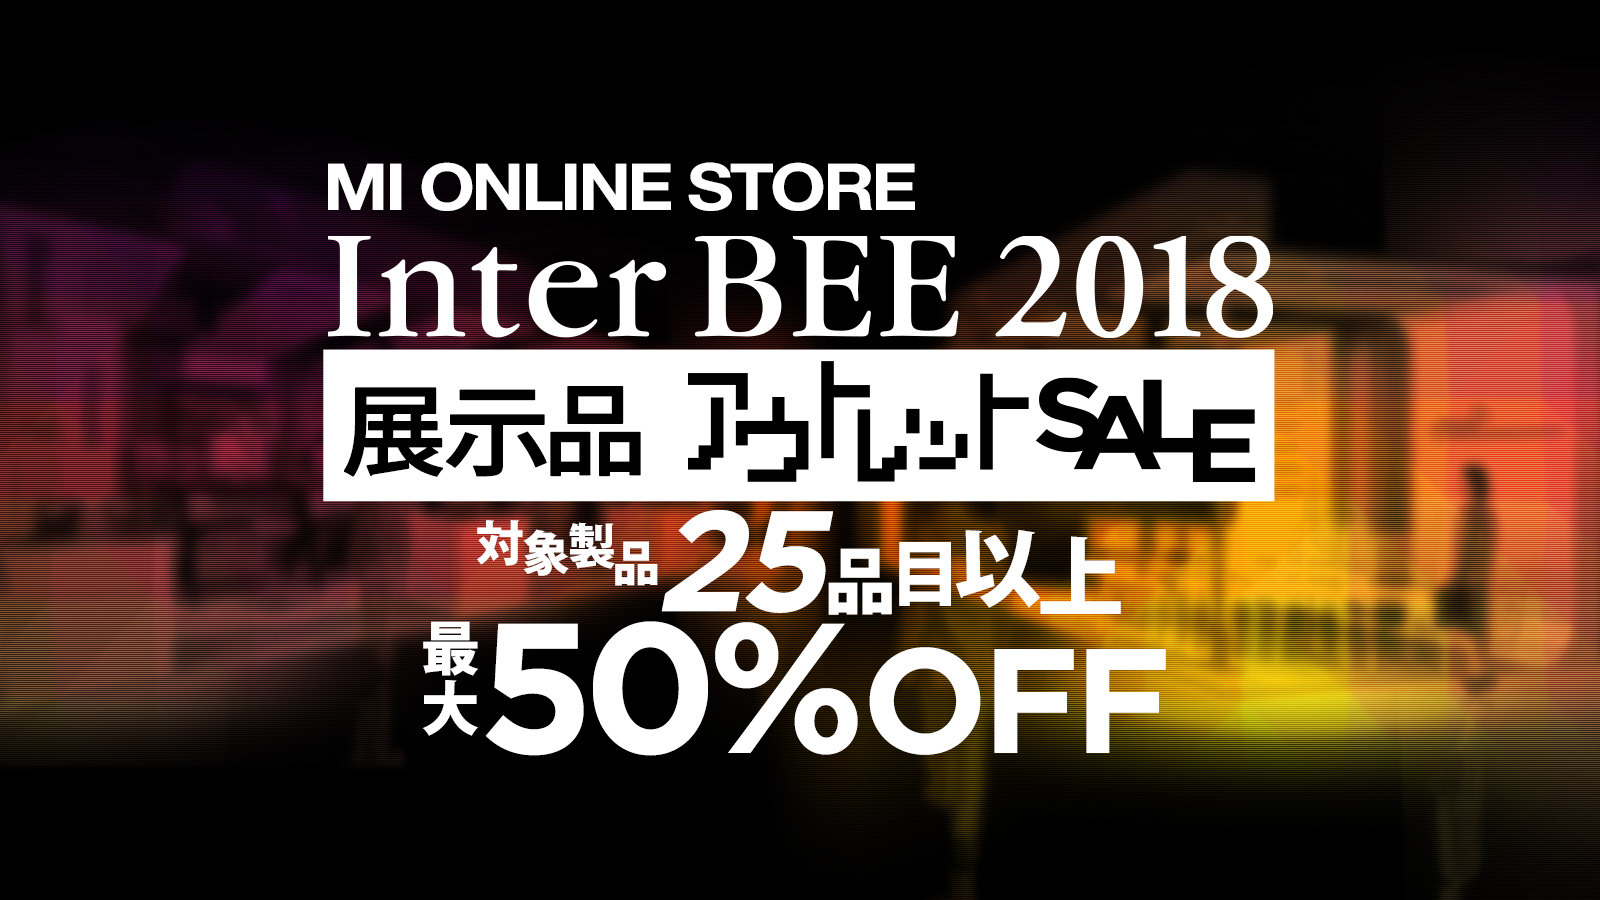 InterBEE 2018 展示使用品を一斉追加!MIストアのアウトレット・セール